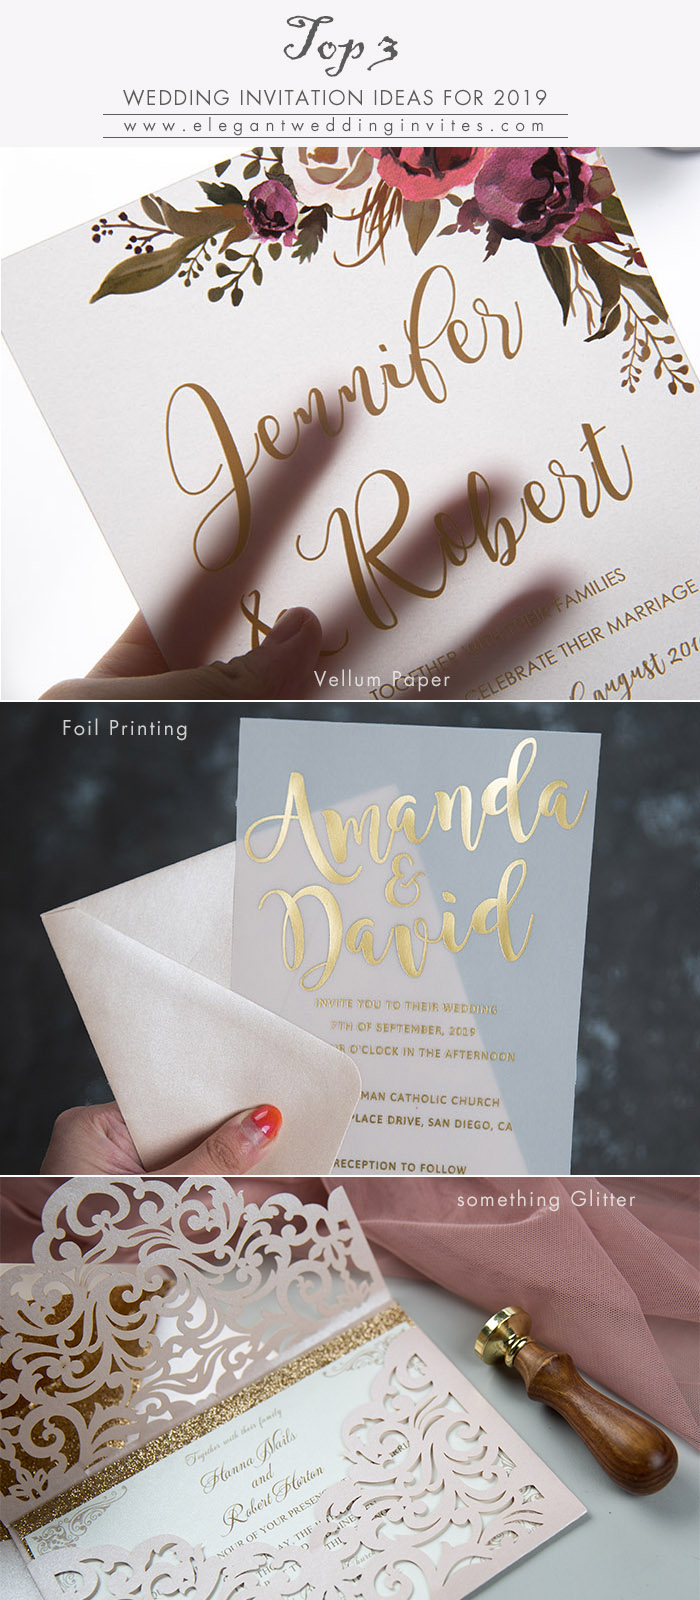 top 3 wedding invitation ideas for 2019 wedding trends